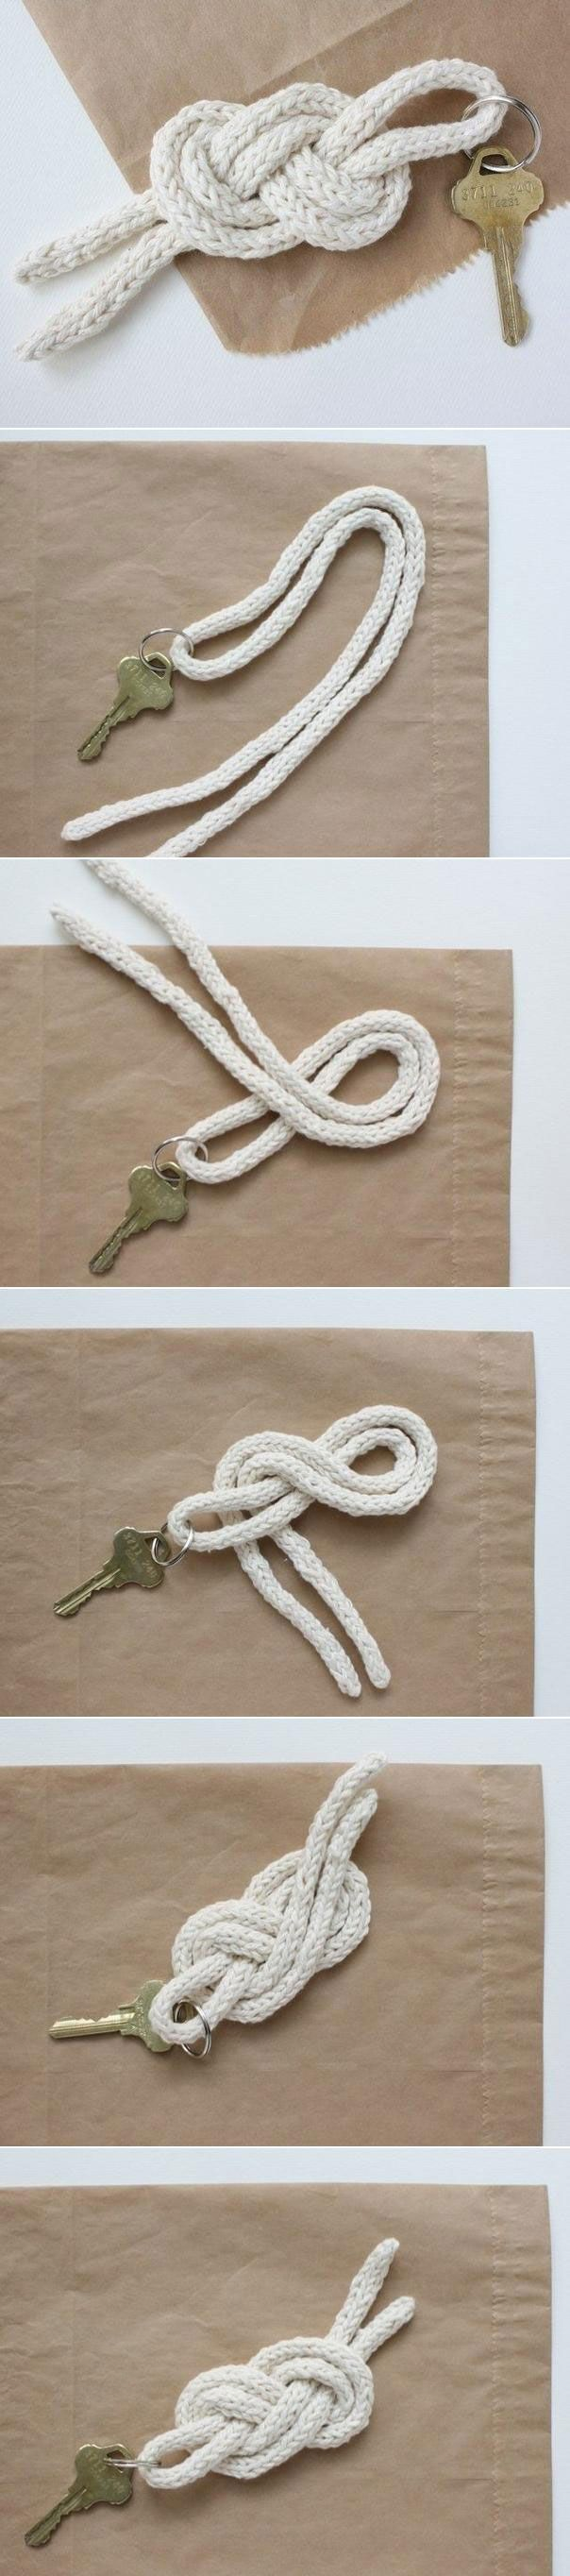 Knot key chain @Jess Pearl Liu Sotier Werner will you crochet me a string like this so I can make a key chain??!